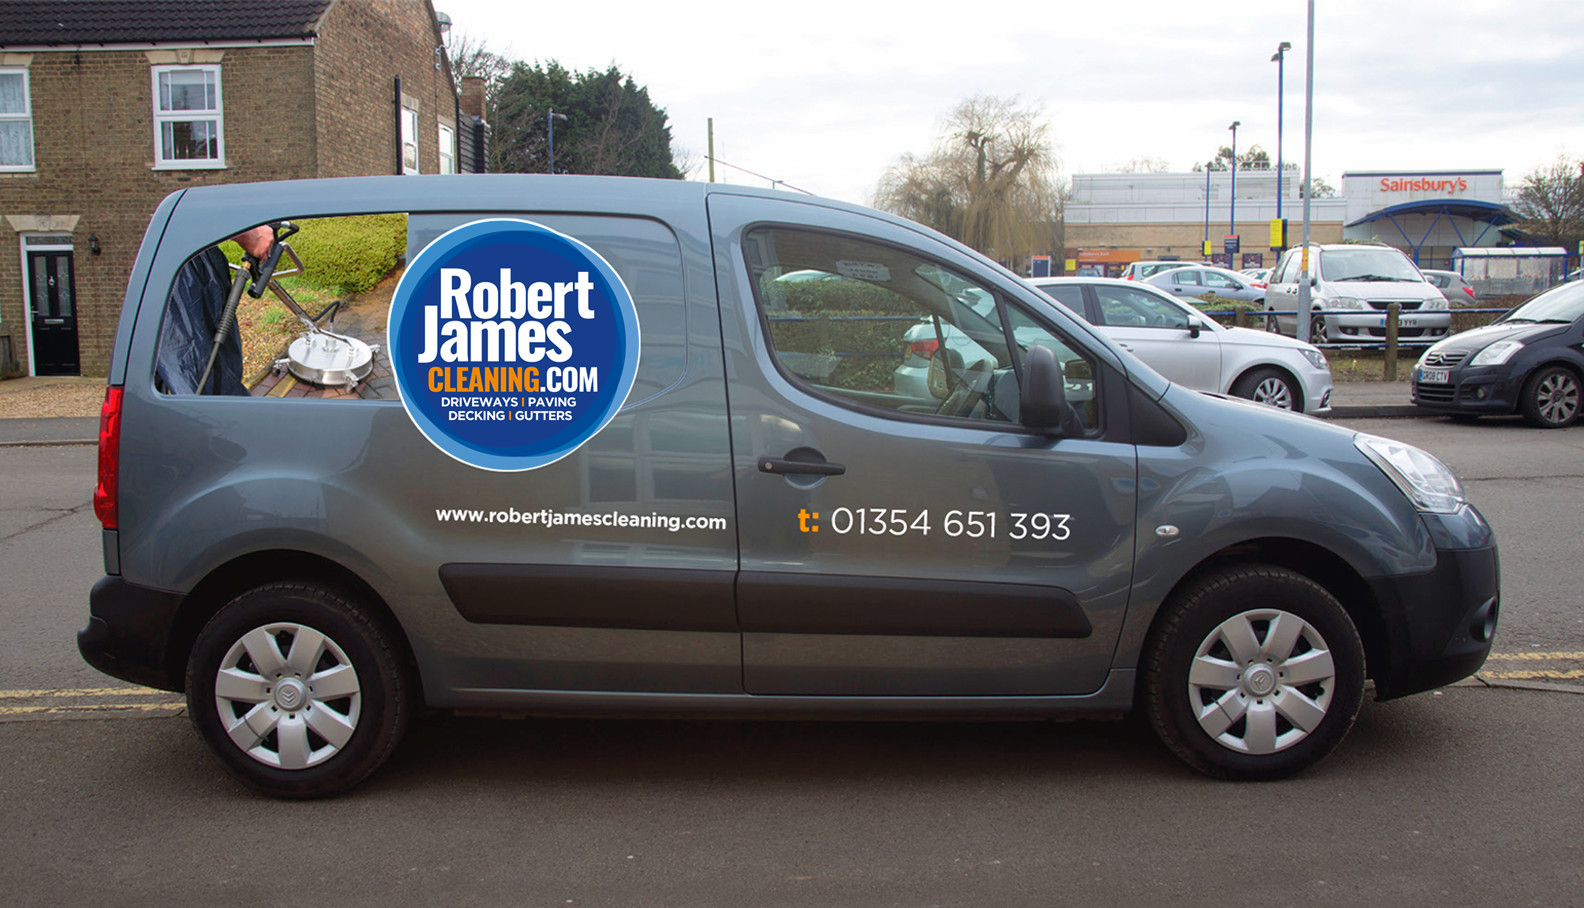 Robert James Cleaning van vehicle livery side